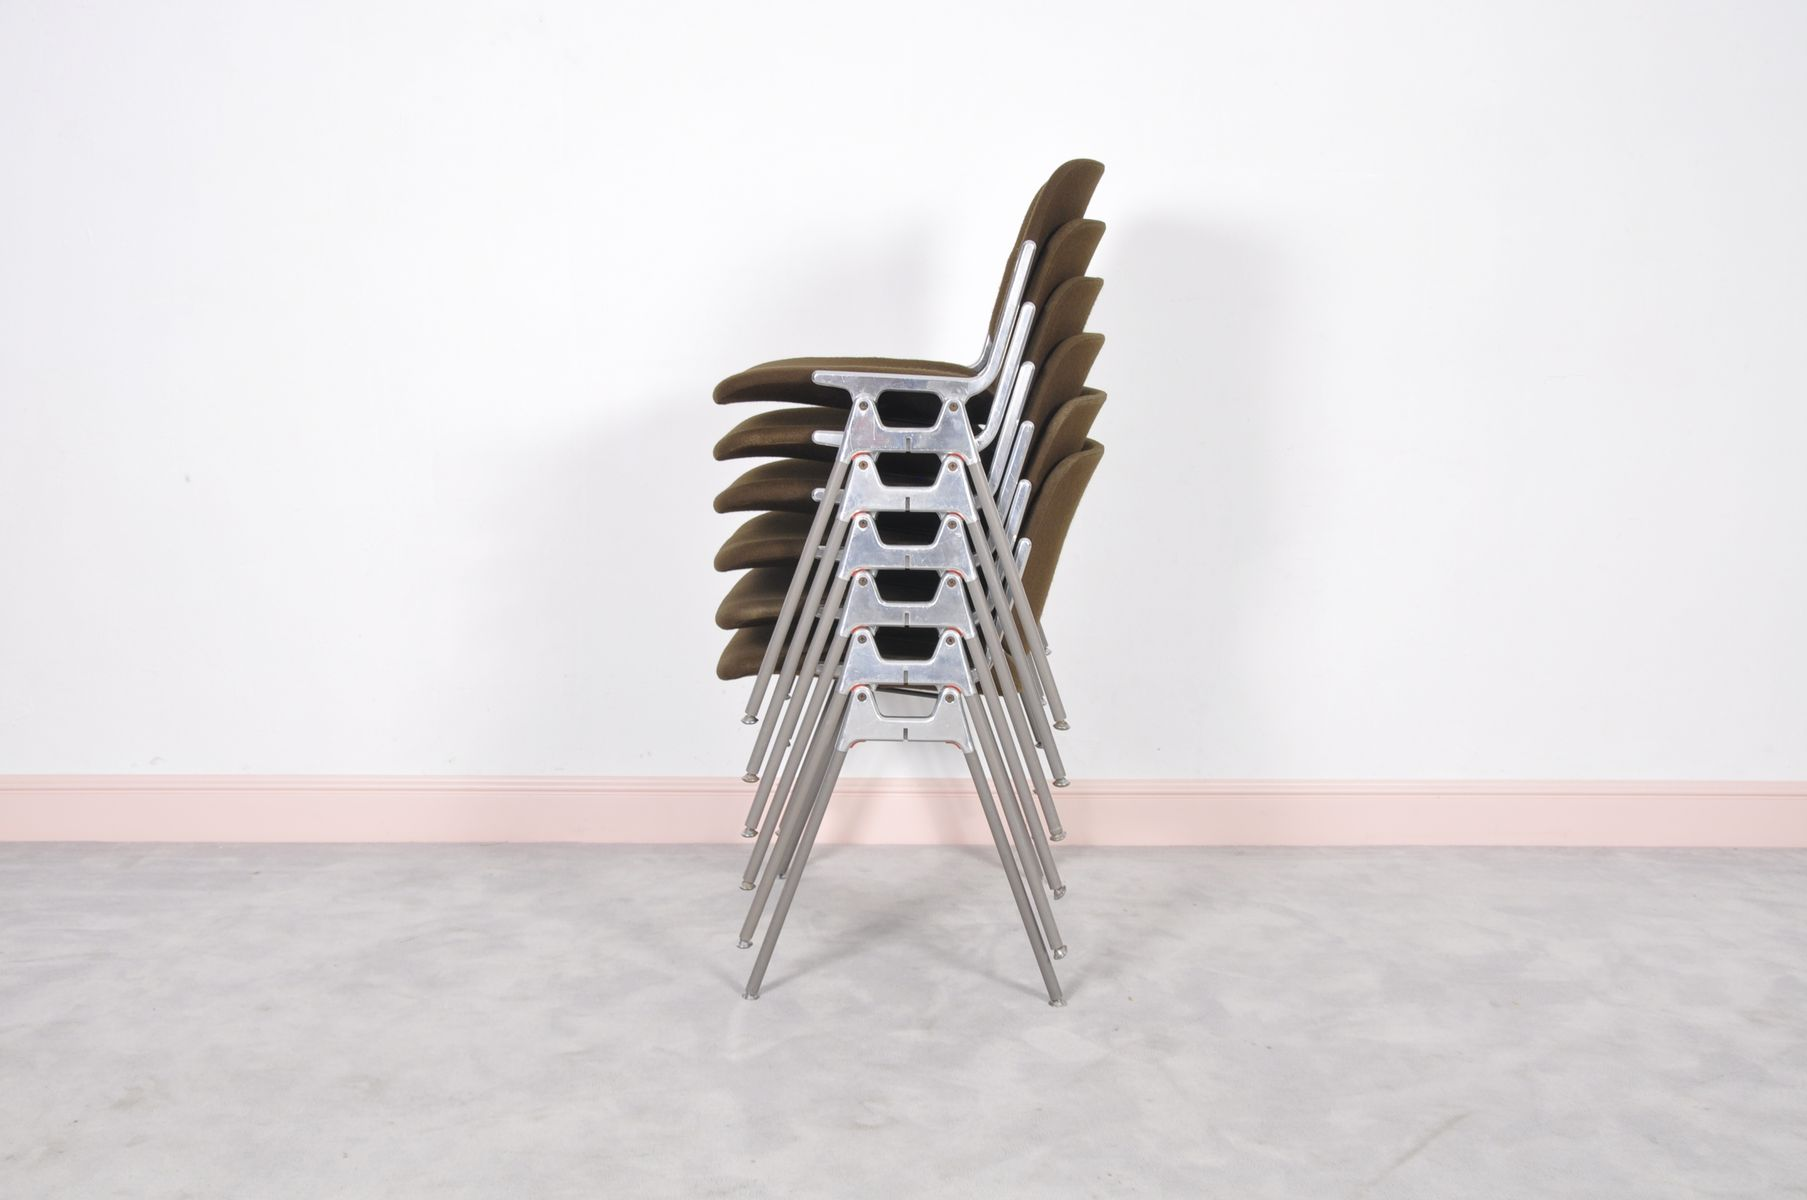 Vintage DSC 106 Stacking Chair by Giancarlo Piretti for Castelli